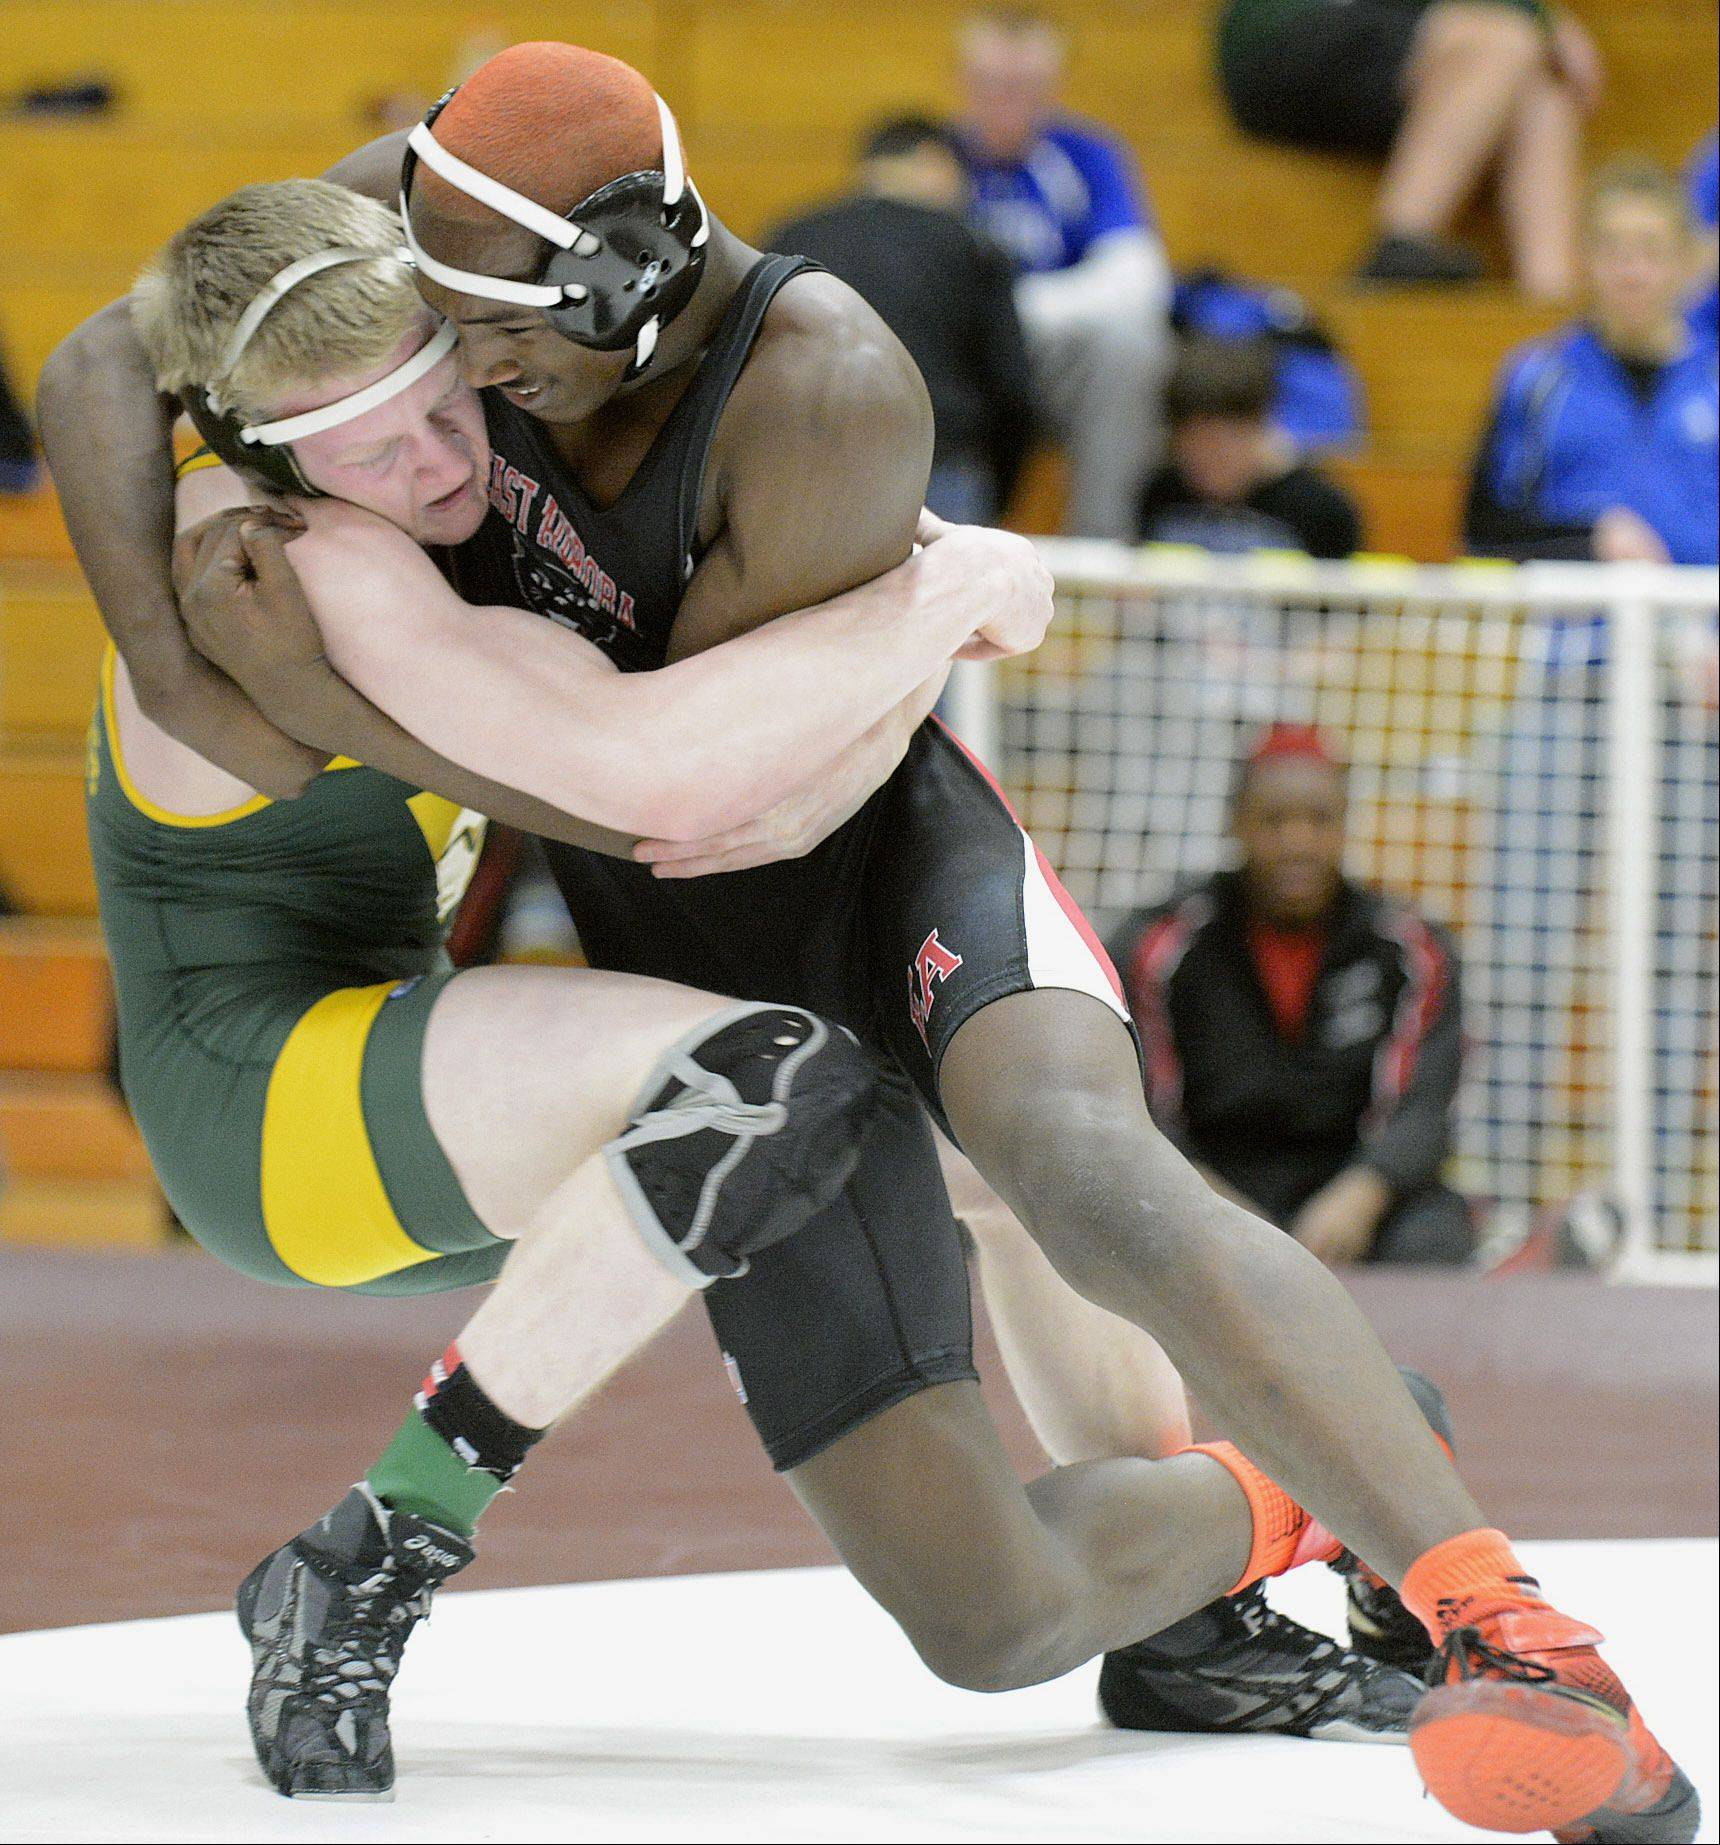 Waubonsie Valley's Jack Timberlake, left, and East Aurora's Tim Young compete in the 170-pound match final at the Upstate 8 Conference championship in Elgin.